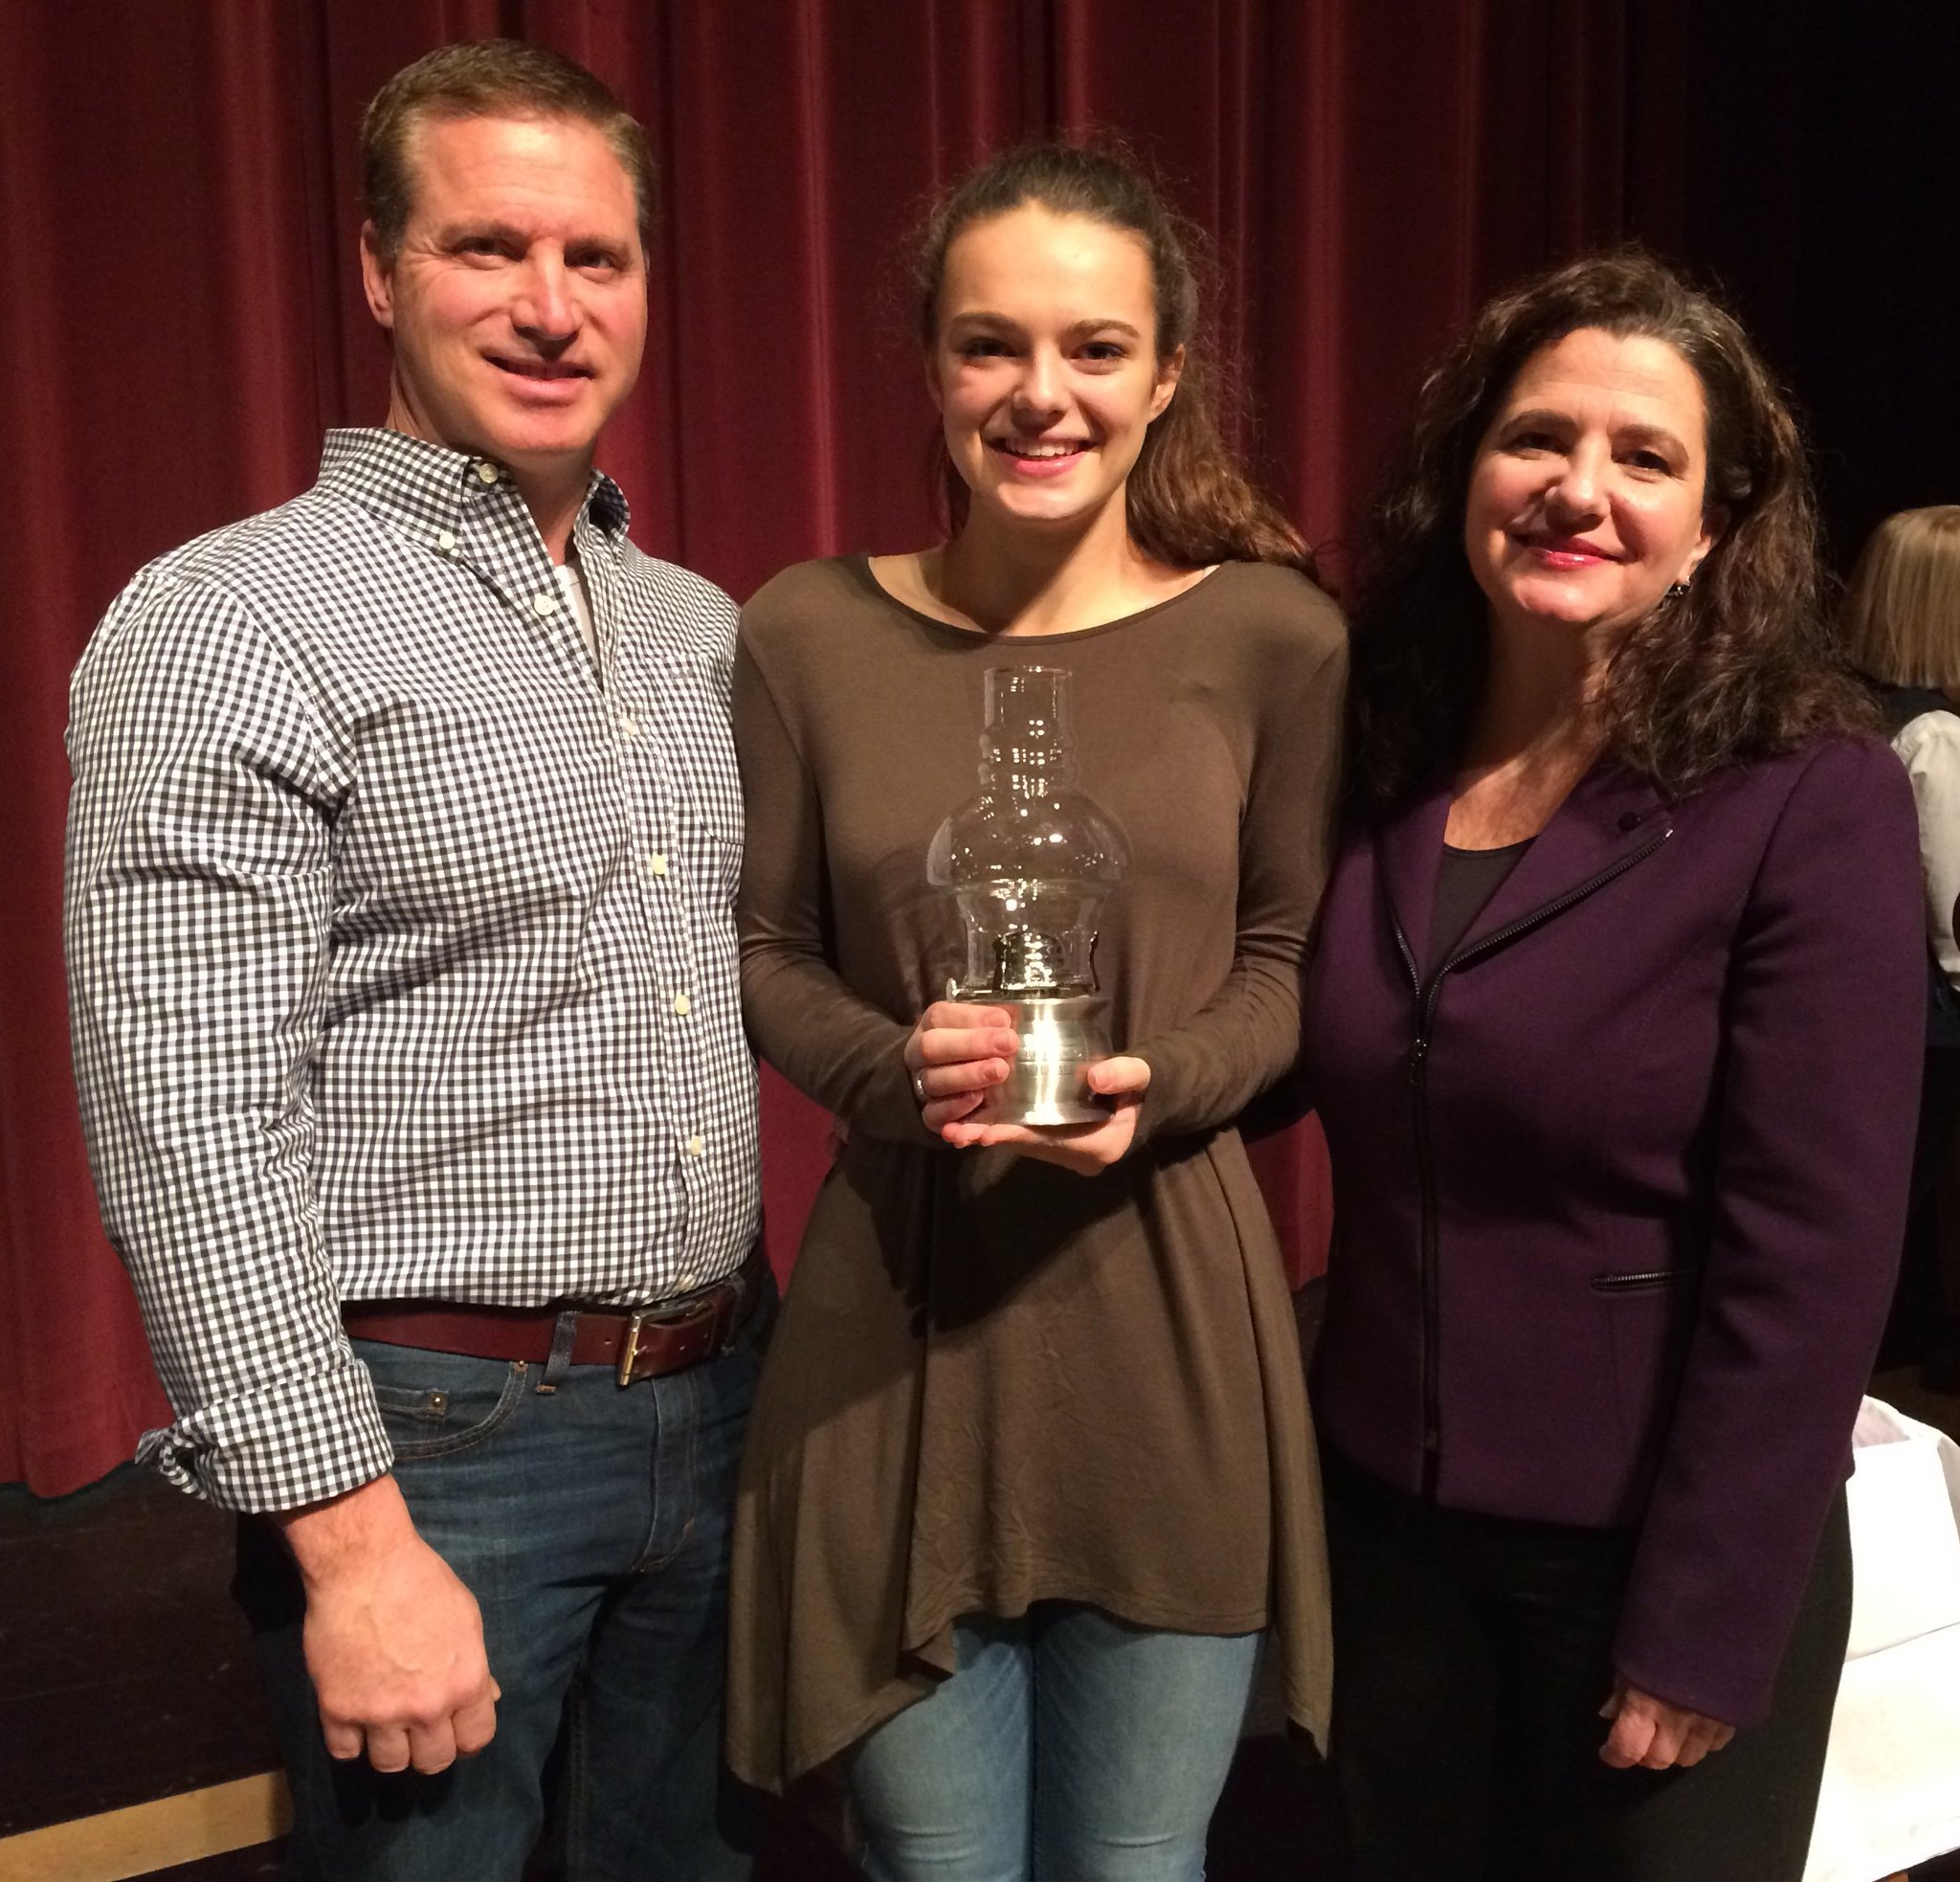 Congratulations to Mary Kate Gunville '17 recipient of the 2017Hector Hebert award. #yhslearns https://t.co/xTomfOIgwy